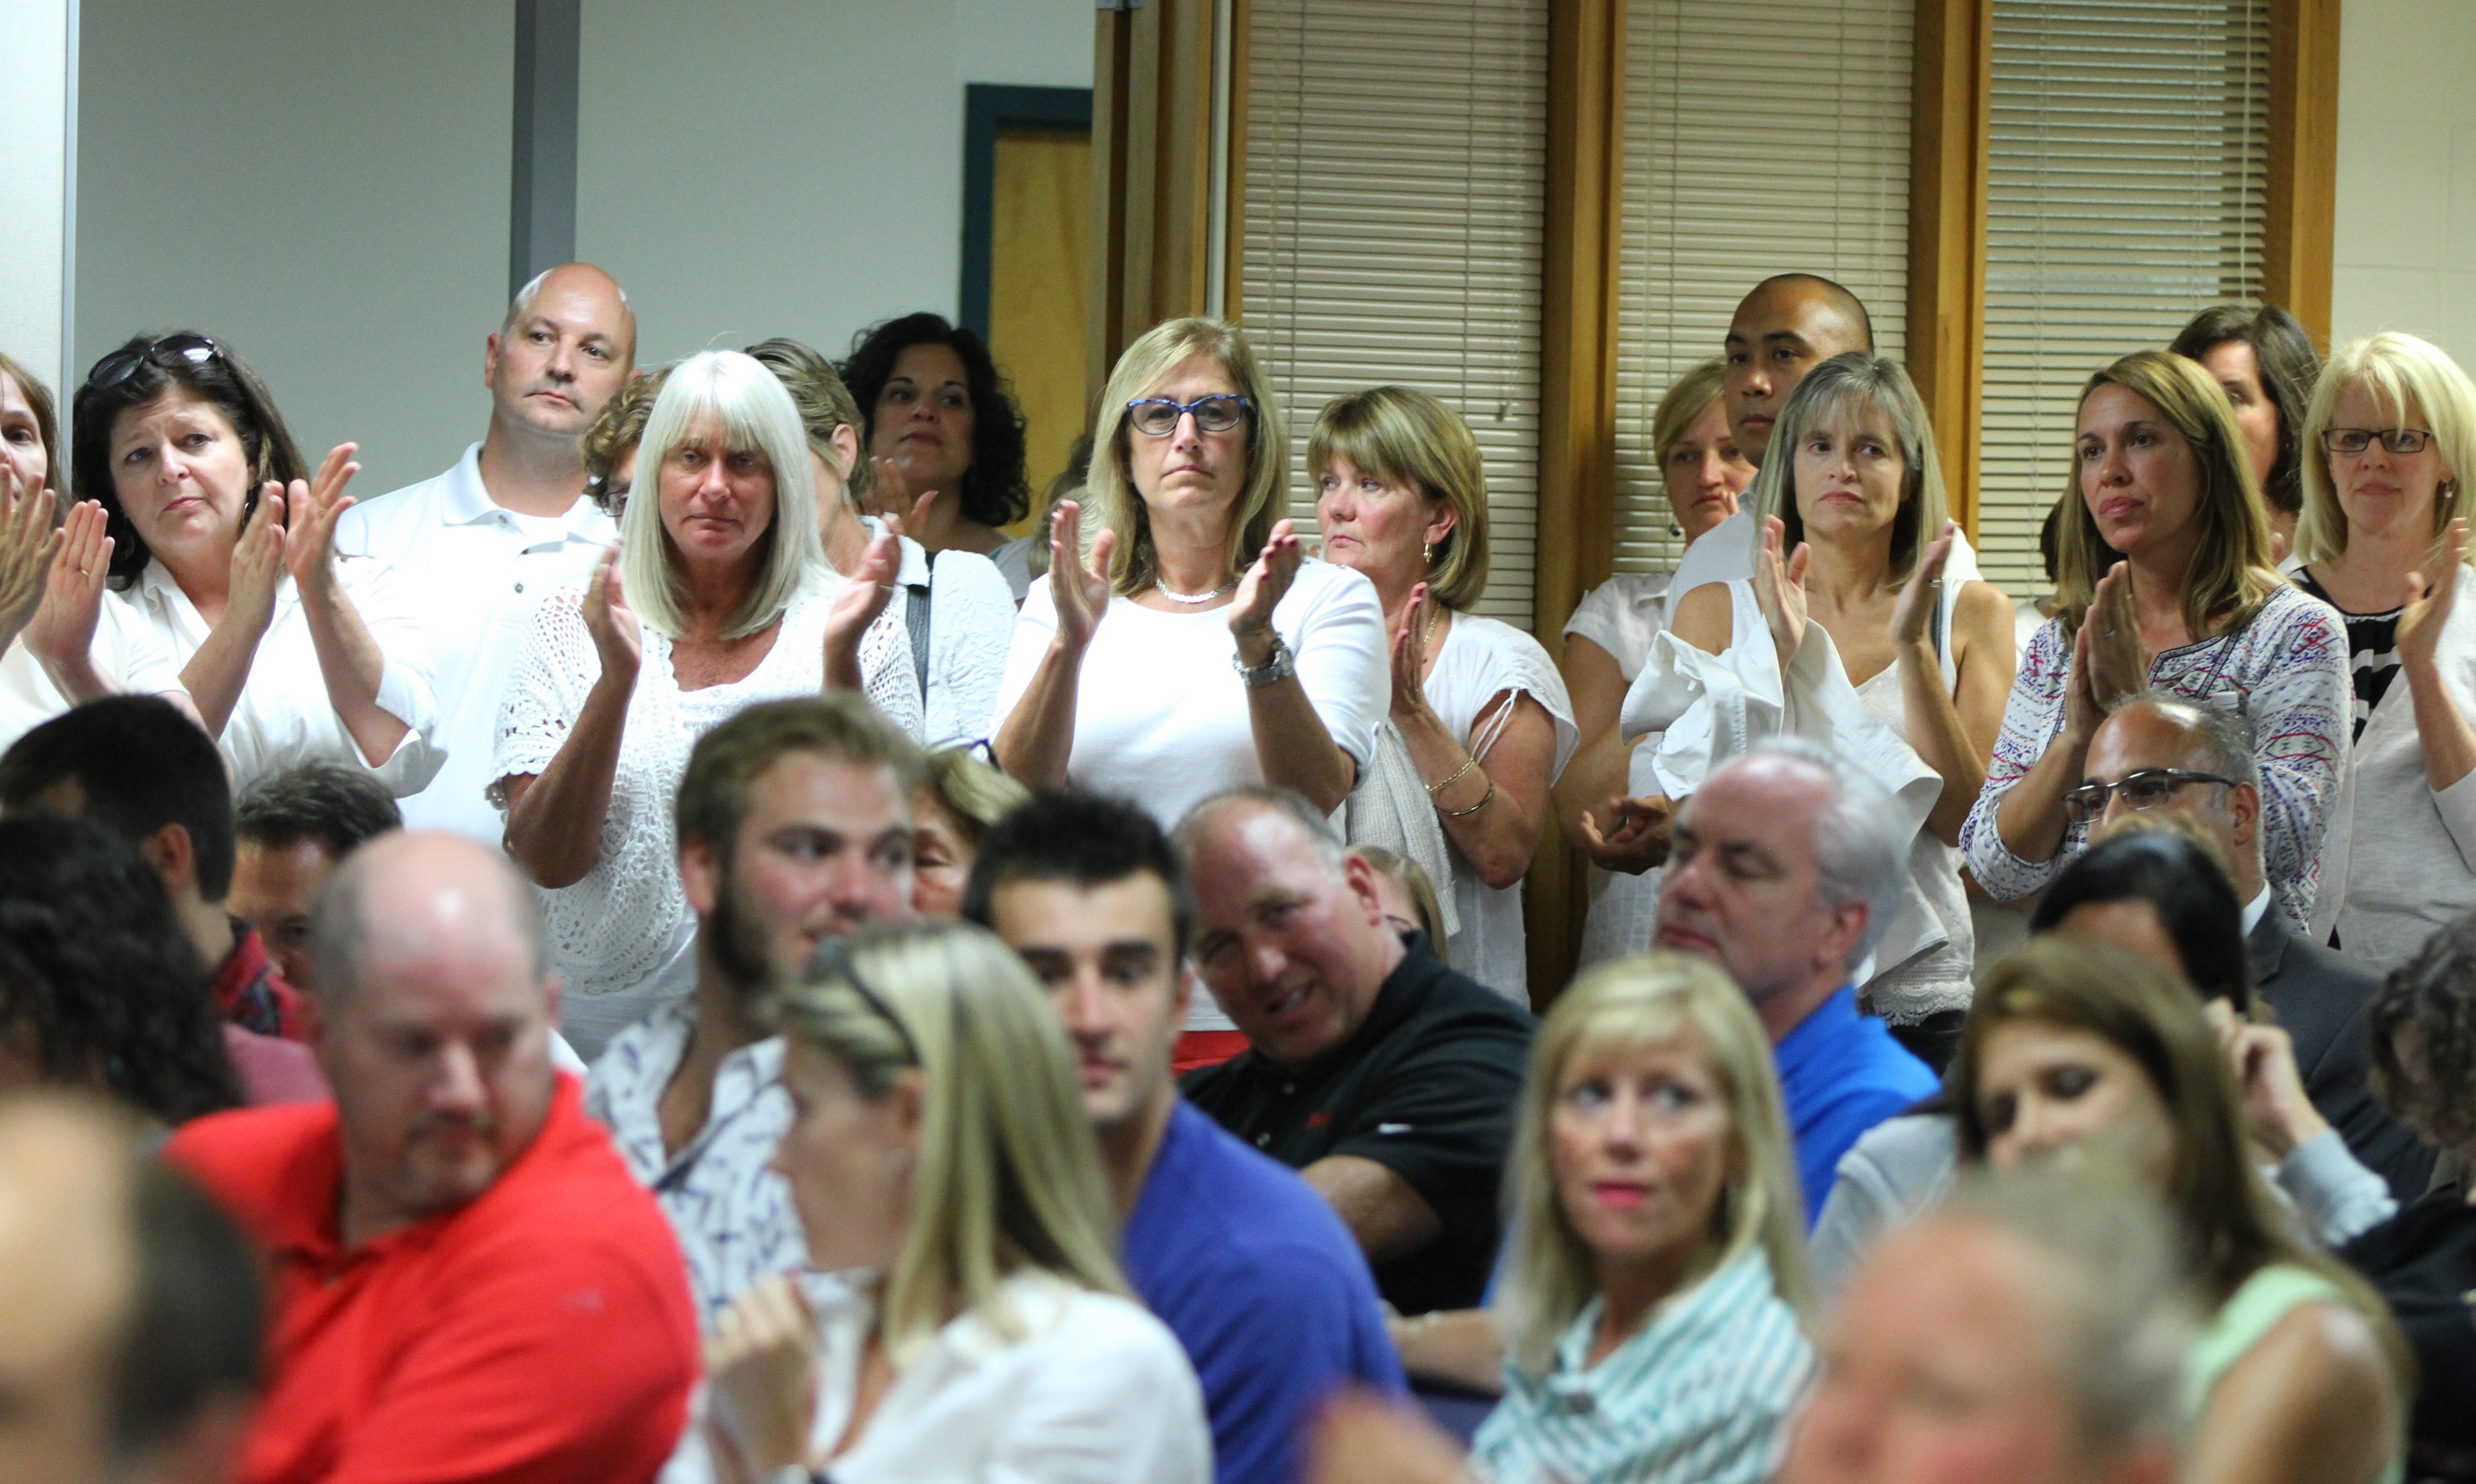 """Residents of Williamsville School District attending board meeting last September clap in support of the teachers union as continuing controversies have marked an end to the """"good times"""" and brought about a lively election with one-third of the board's seats at stake."""